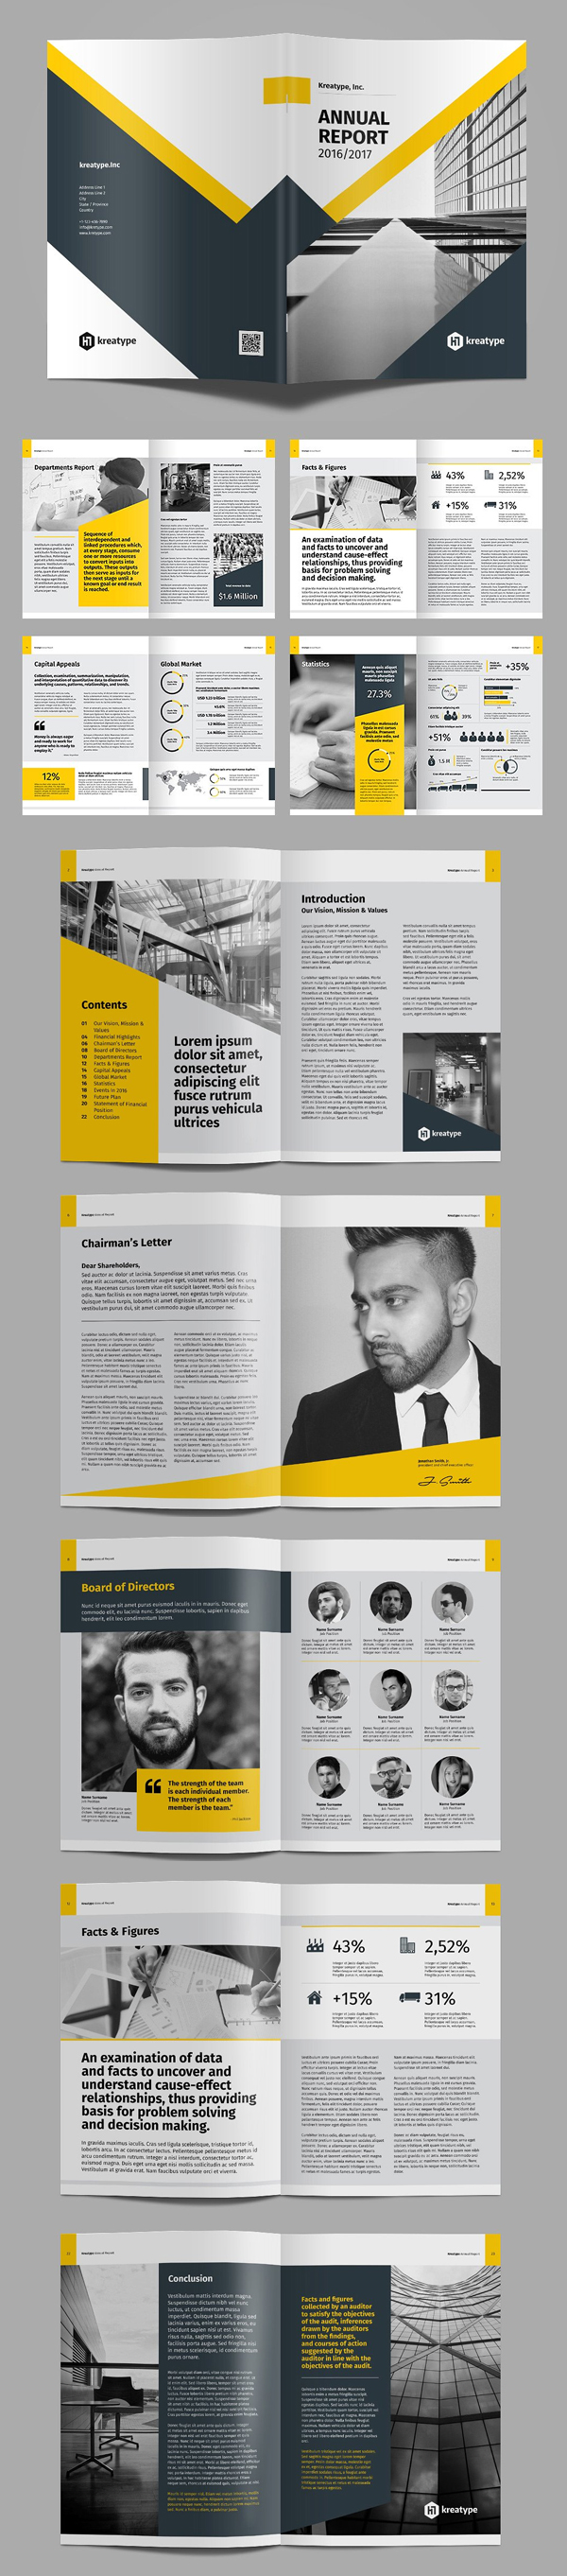 Creative Annual Report 2017 Brochure Template